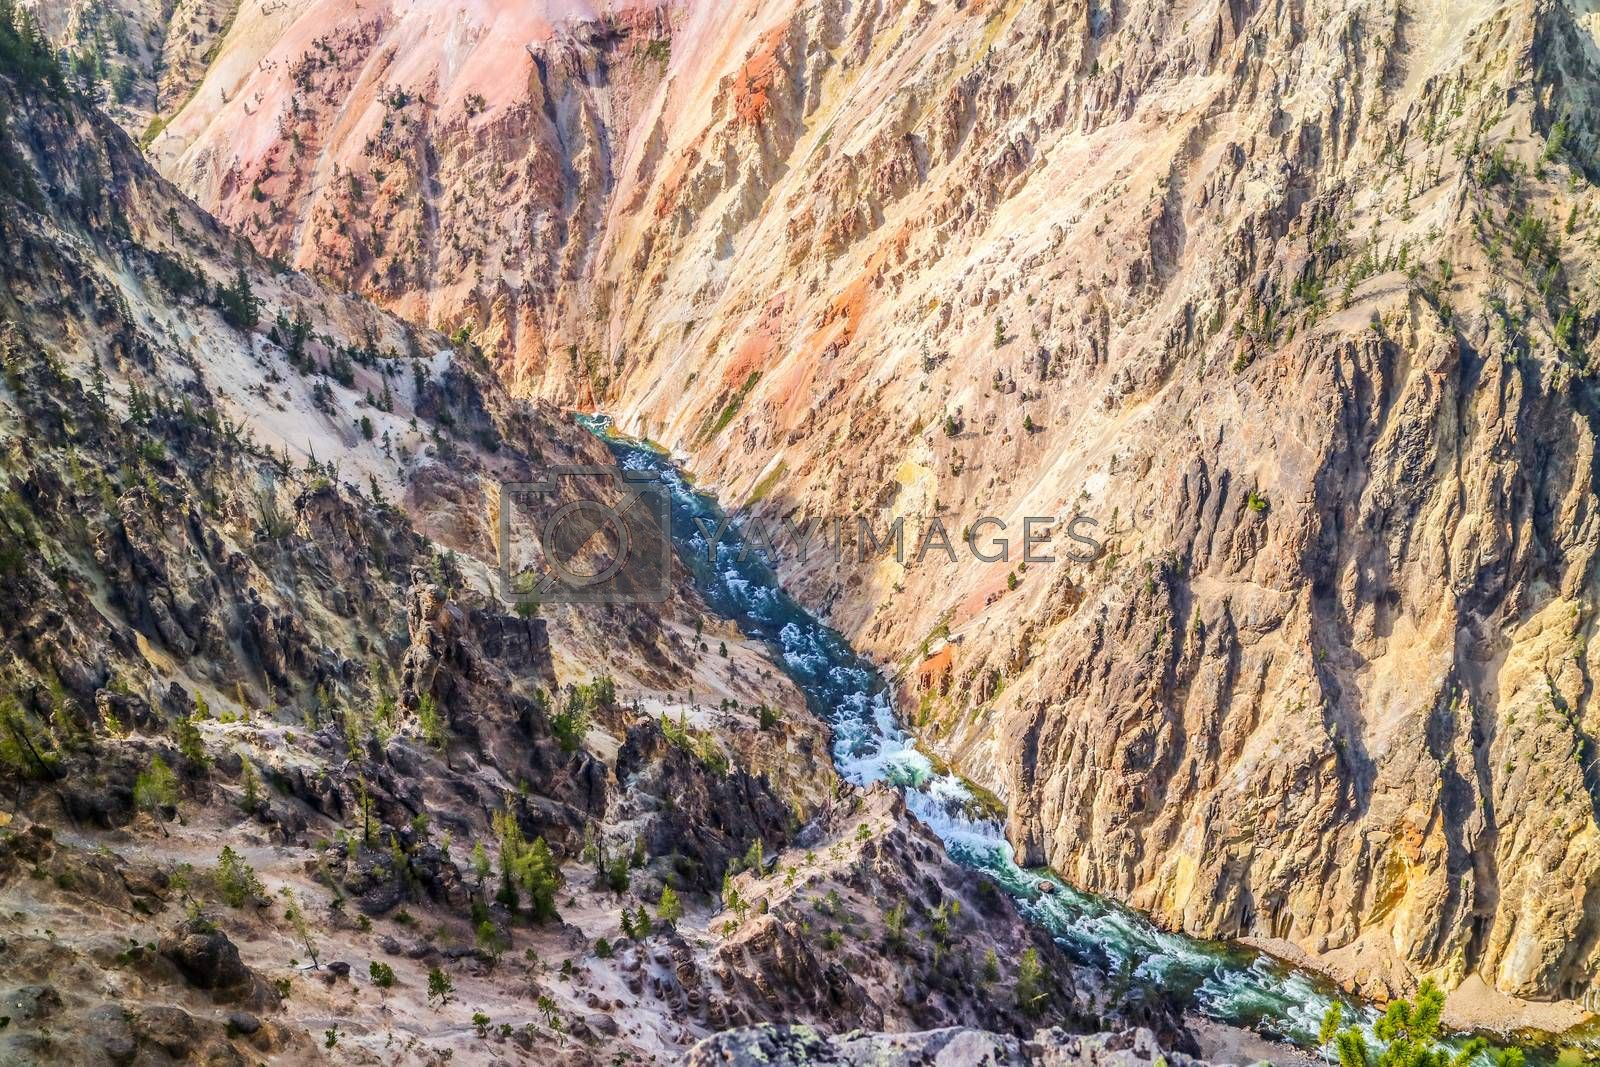 An epic scenery of the canyon in between of those large mountain ranges